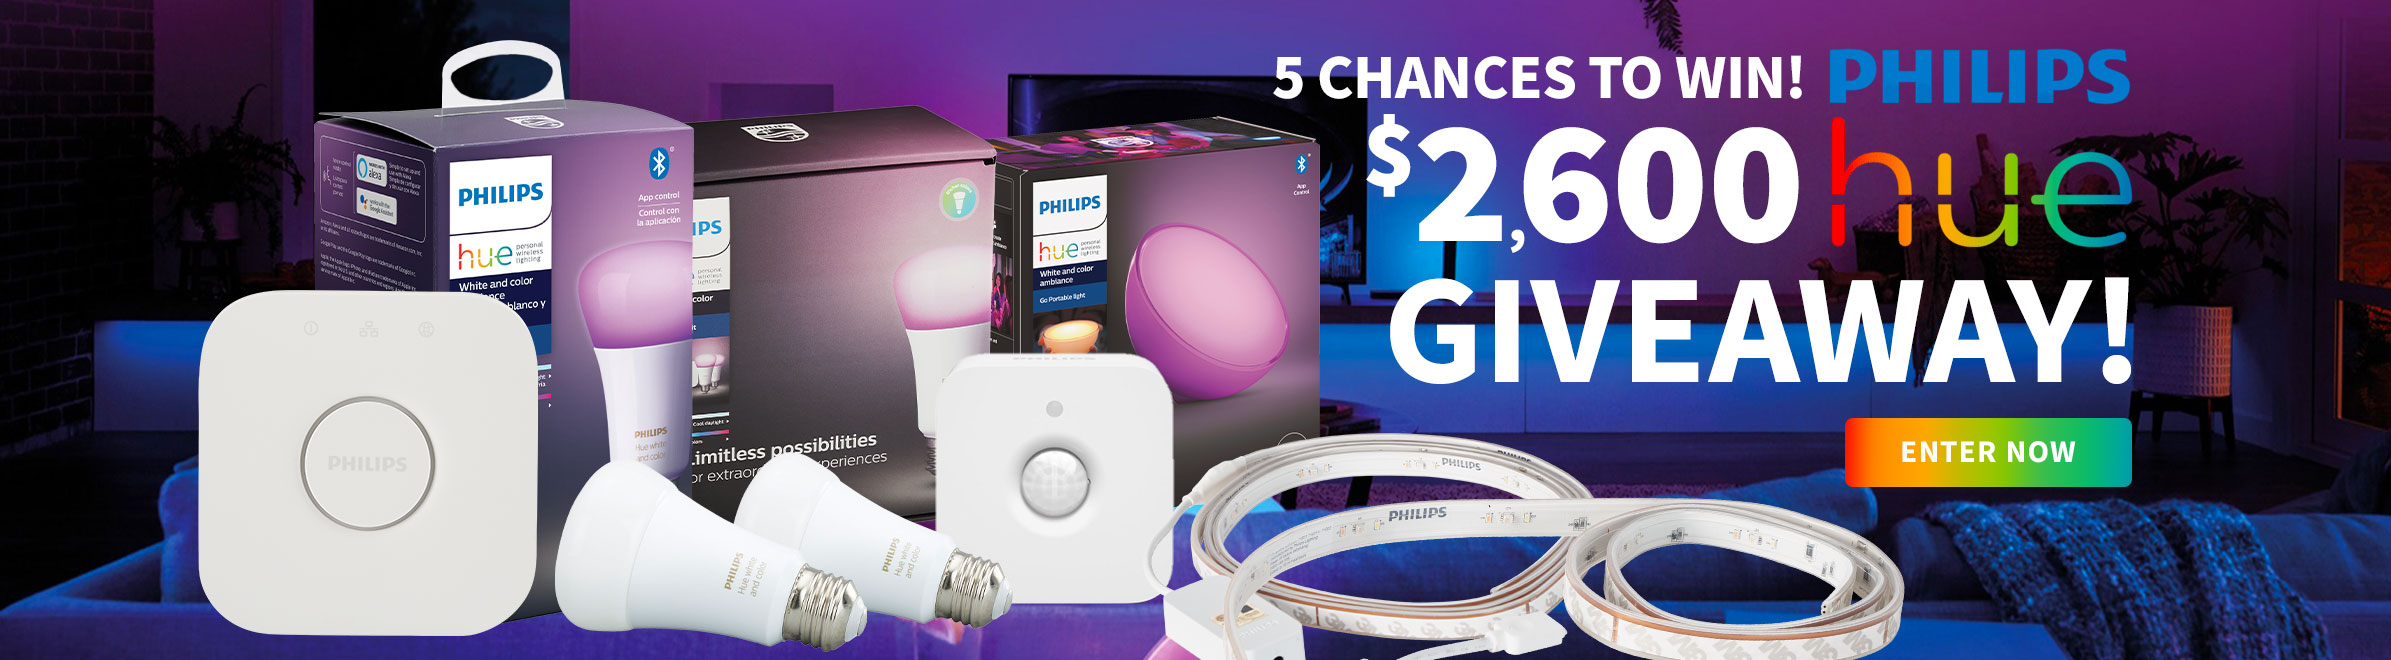 Philips Giveaway